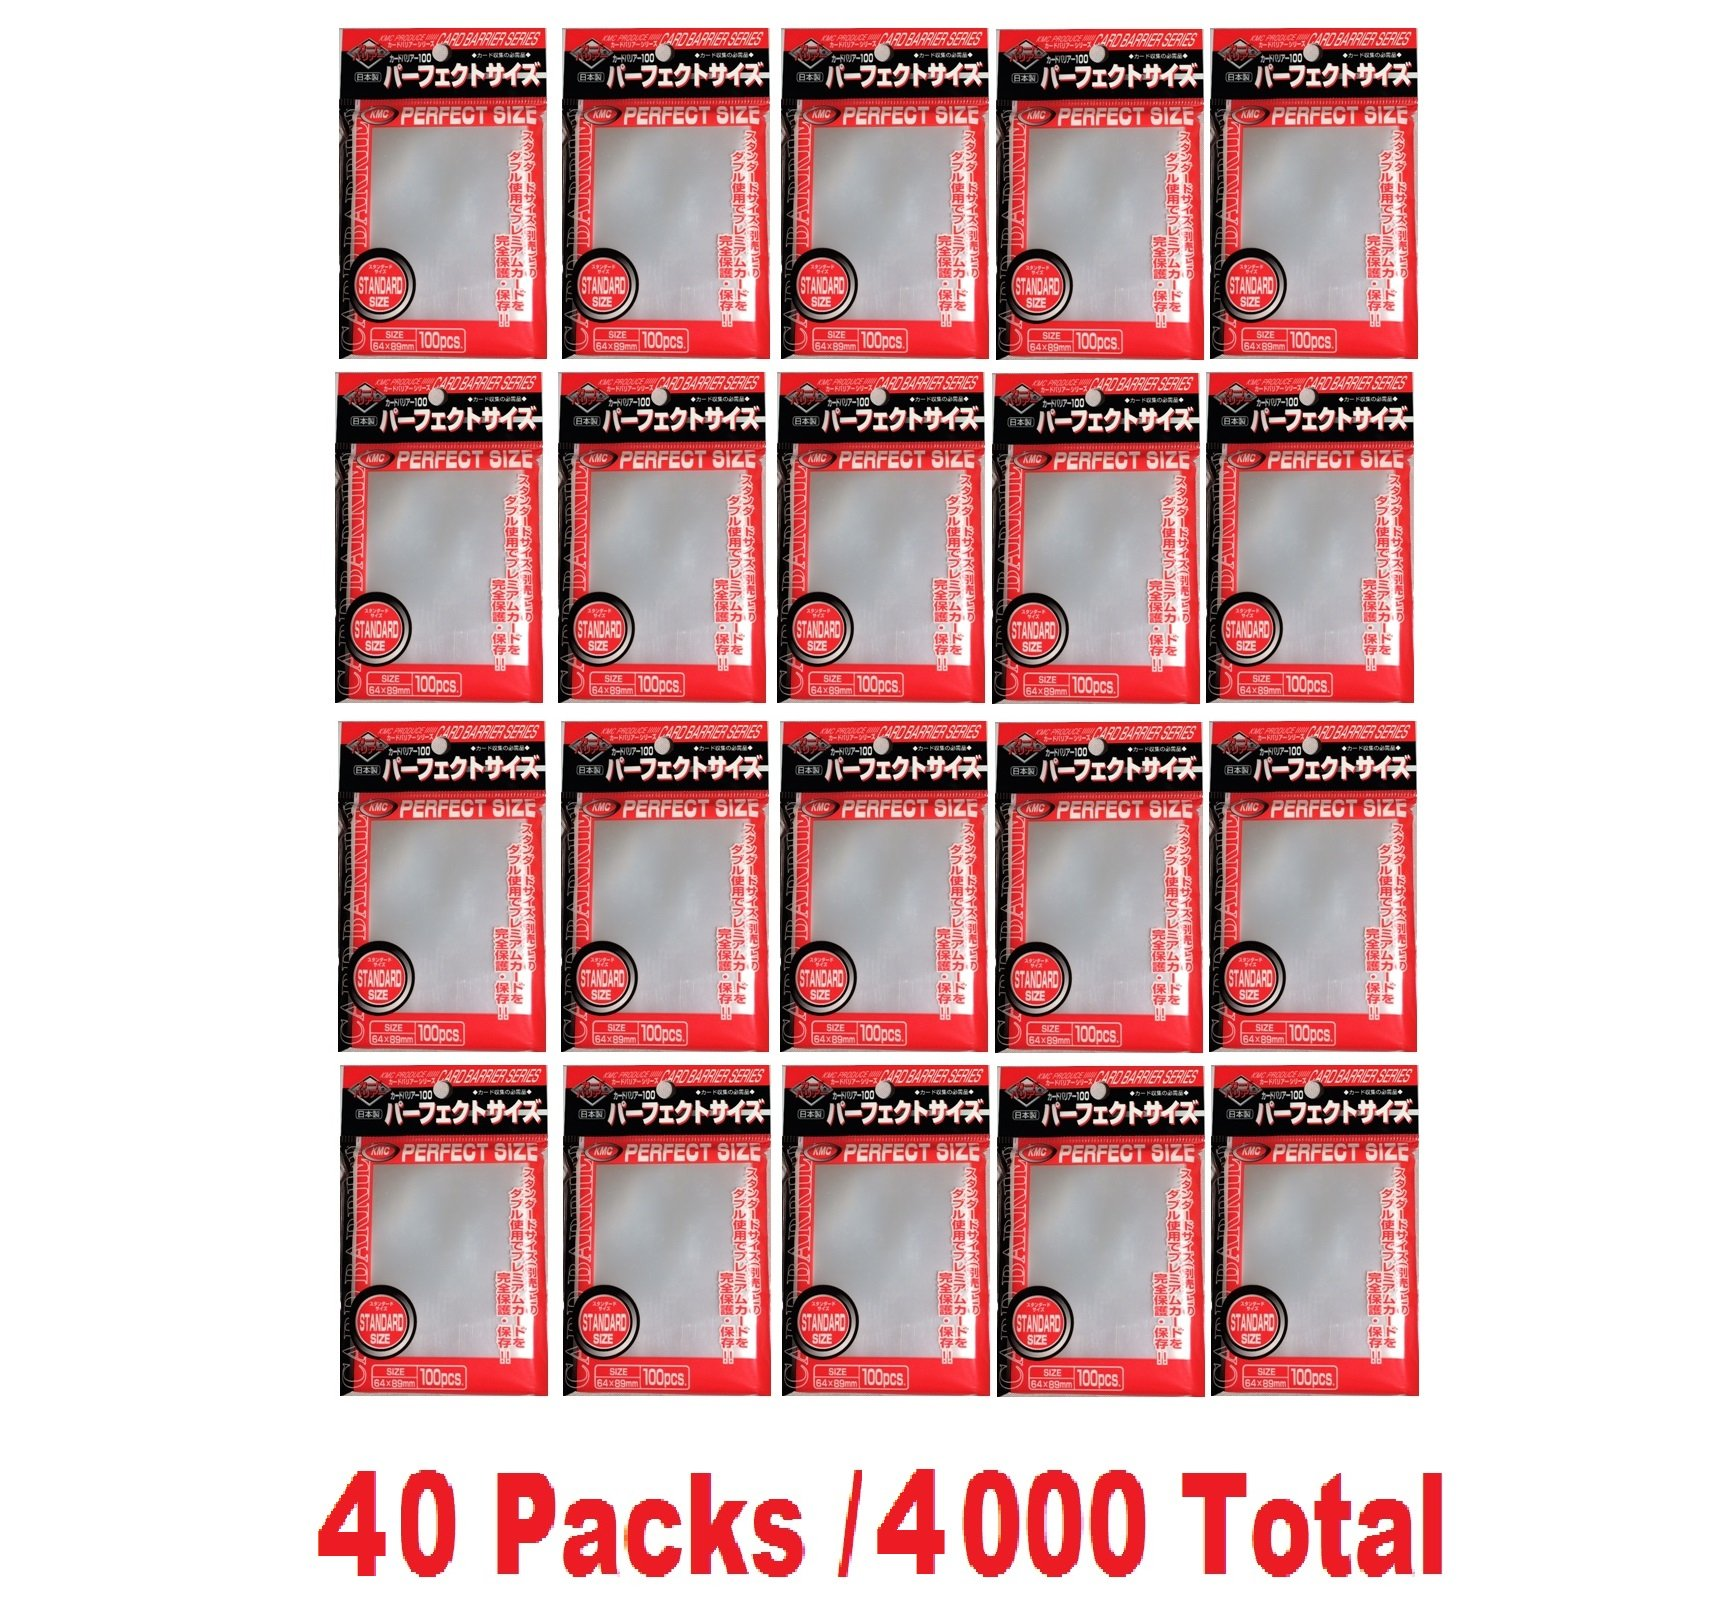 KMC 100 Card Barrier PERFECT SIZE (40 packs/Total 4000) by KMC